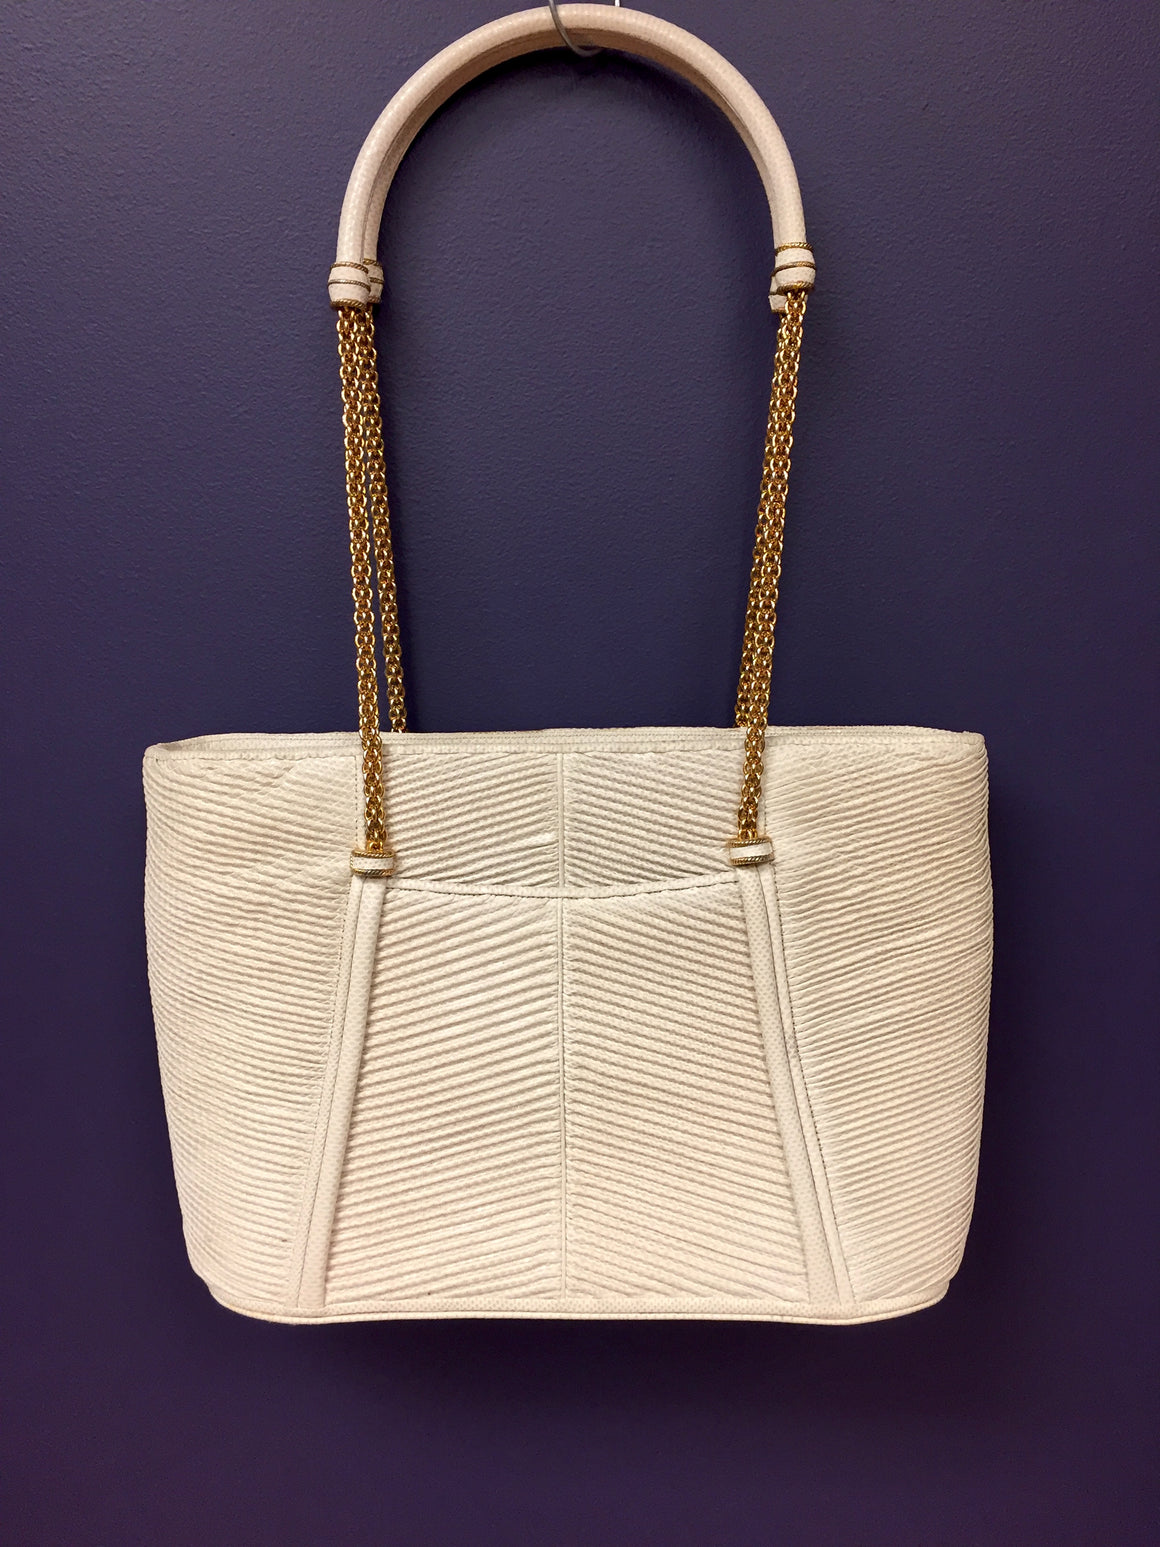 JUDITH LEIBER Vintage  Ivory Pleated Karung Skin Bag  with Gold Chain Link Handles Purse